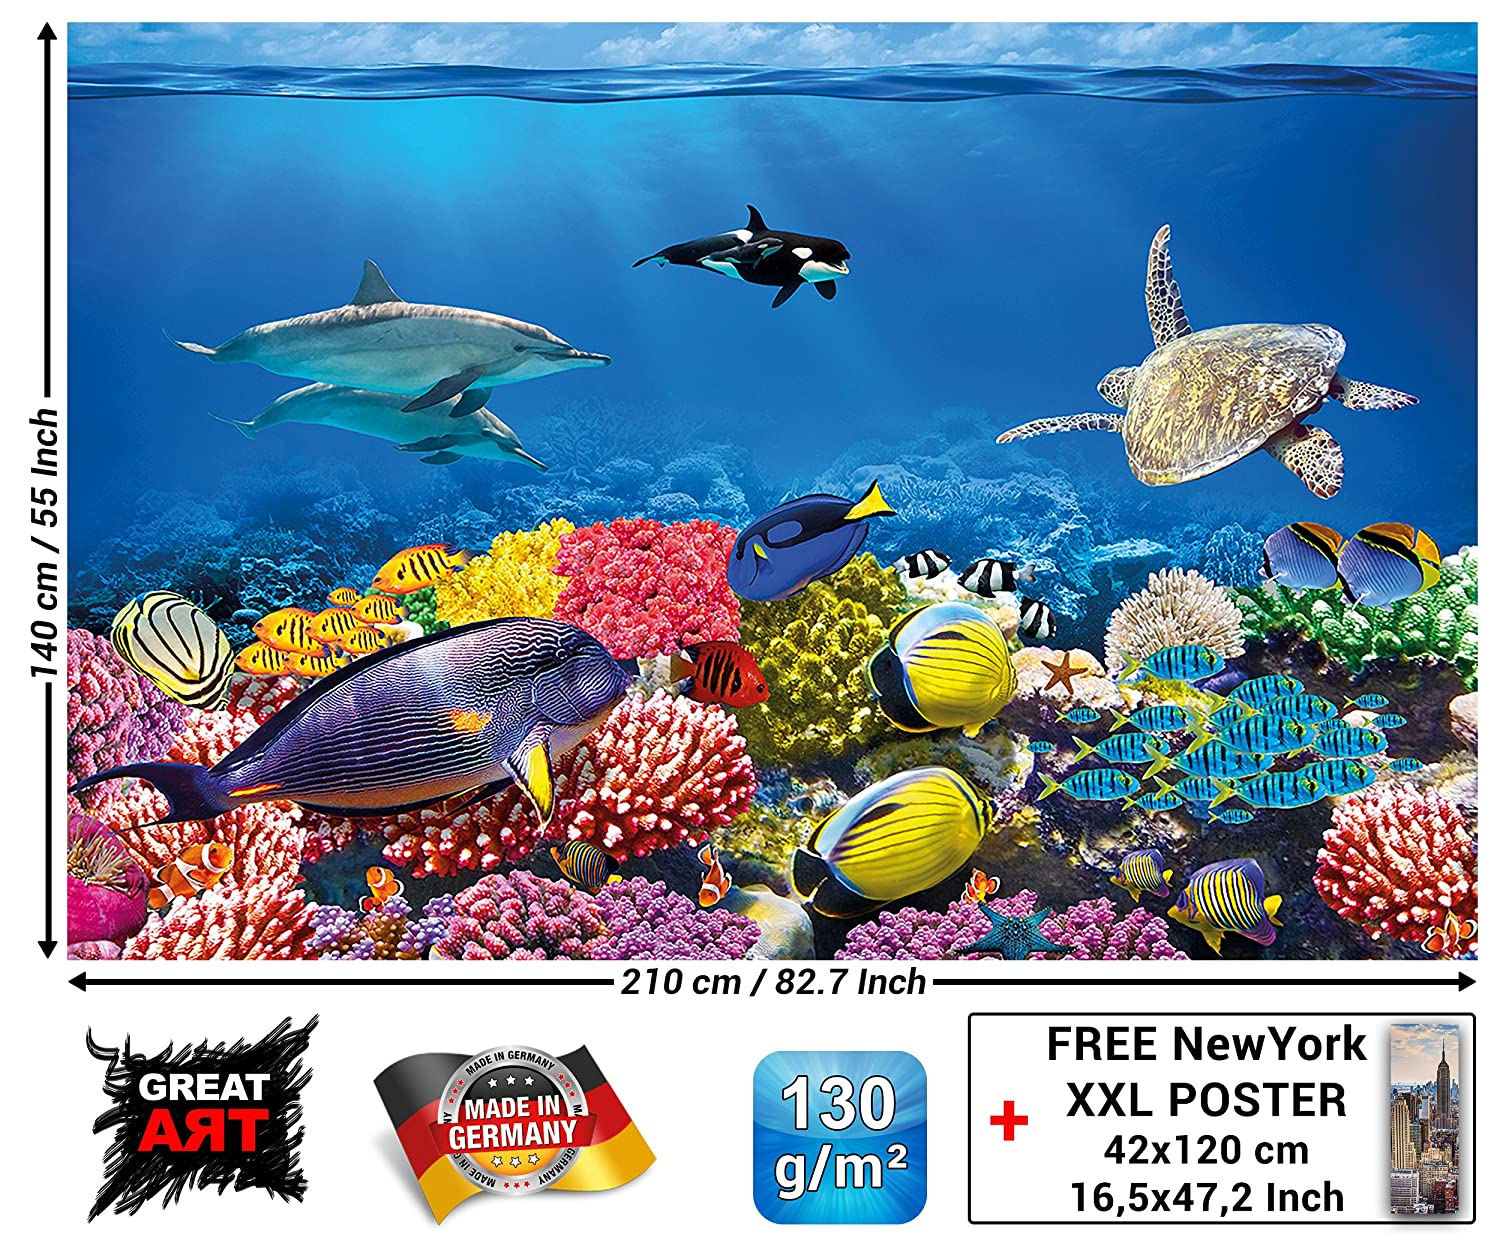 amazon com undersea coral reef photo wall paper aquarium fish amazon com undersea coral reef photo wall paper aquarium fish sea mural xxl undersea underwater world wall decoration great art 82 7 inch x 55 inch